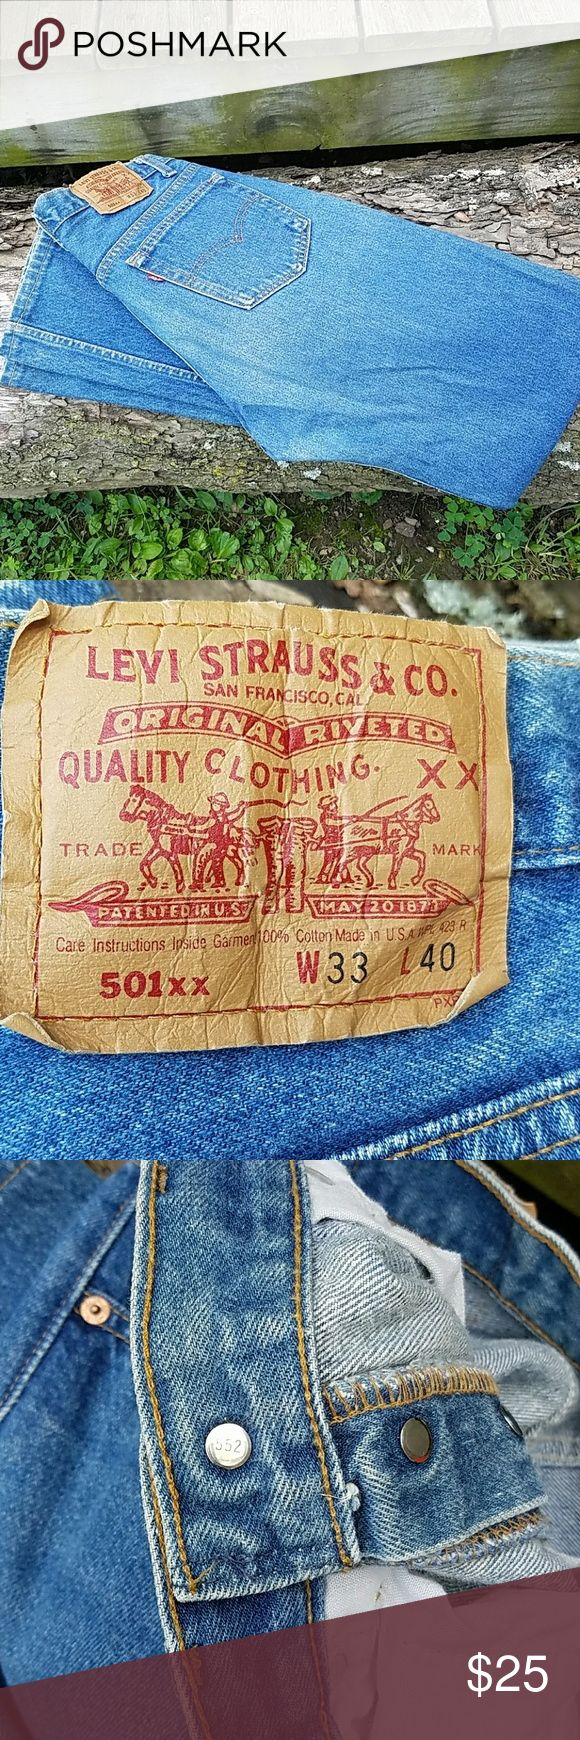 "80's Vintage Levi's 501XX Jeans #522 size 30/35 Excellent condition. Vintage Levi's 501XX button fly jeans made in USA in the 80's. #522 on back of top button. Tagged 33/40. Actual waist measurement is between 30-30.5"". Inseam is right at 35"". Levi's Jeans Straight"